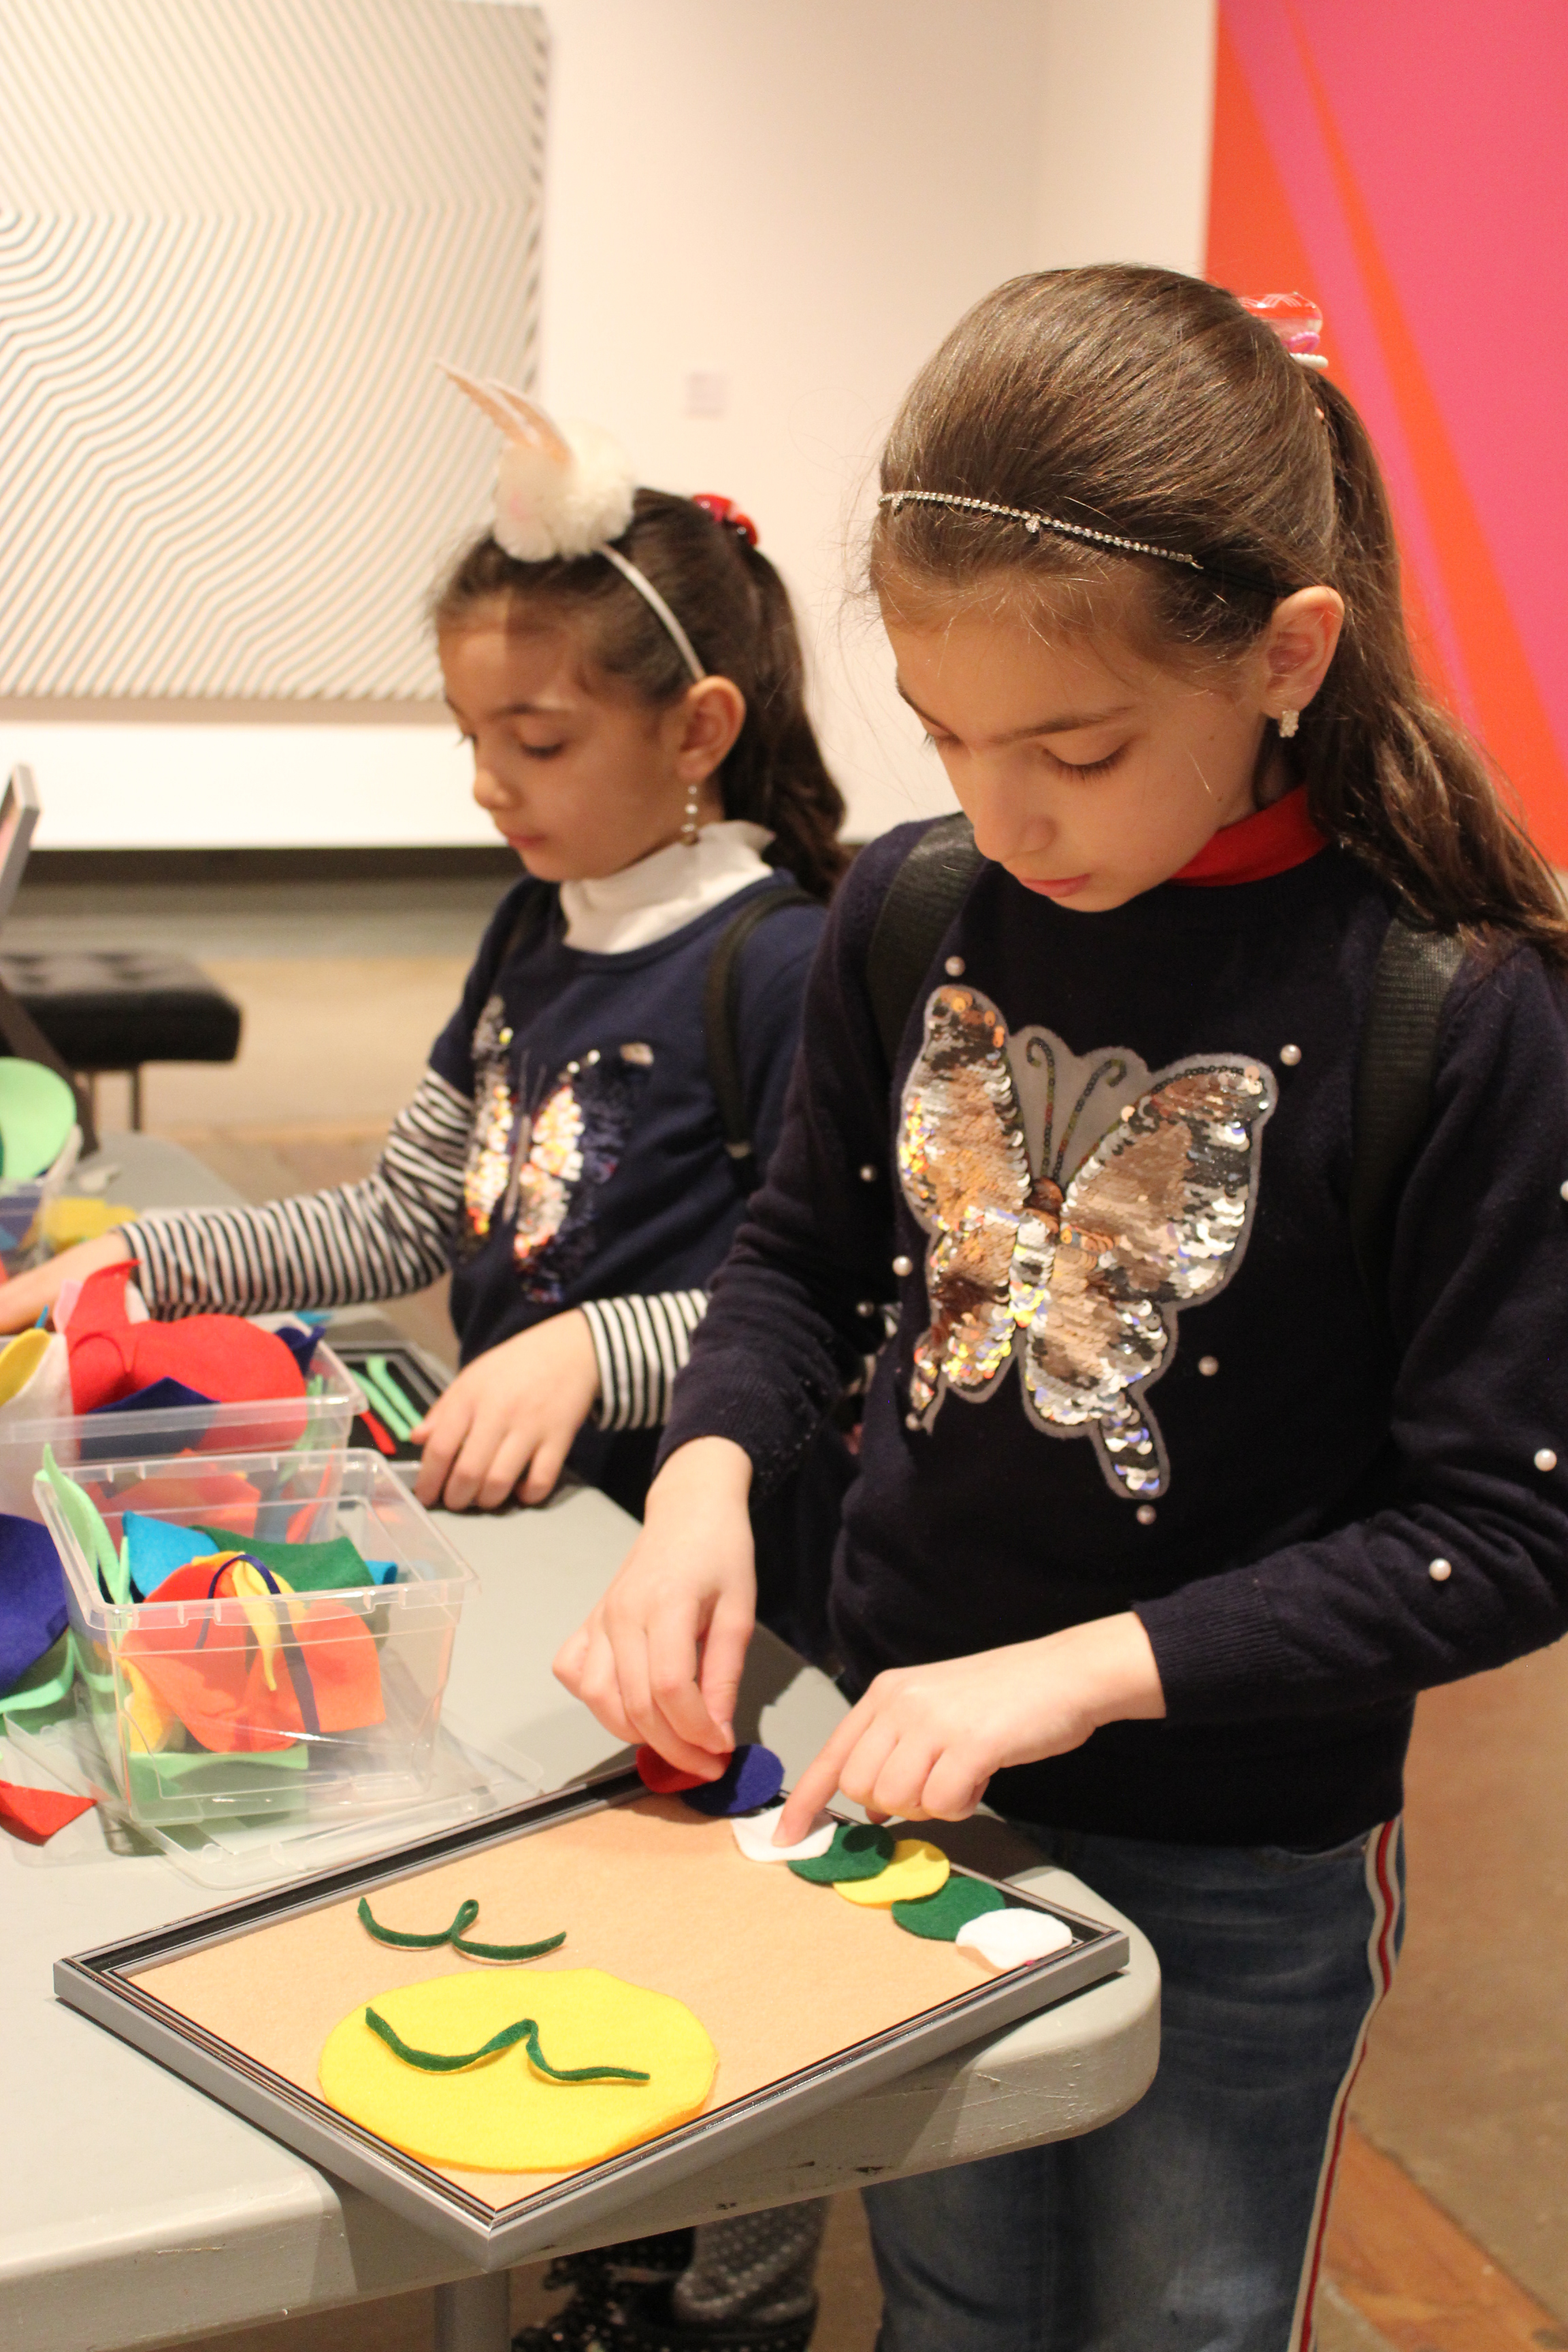 Two young girls making felt collages at a table set up in the gallery with large abstract paintings visible in the background